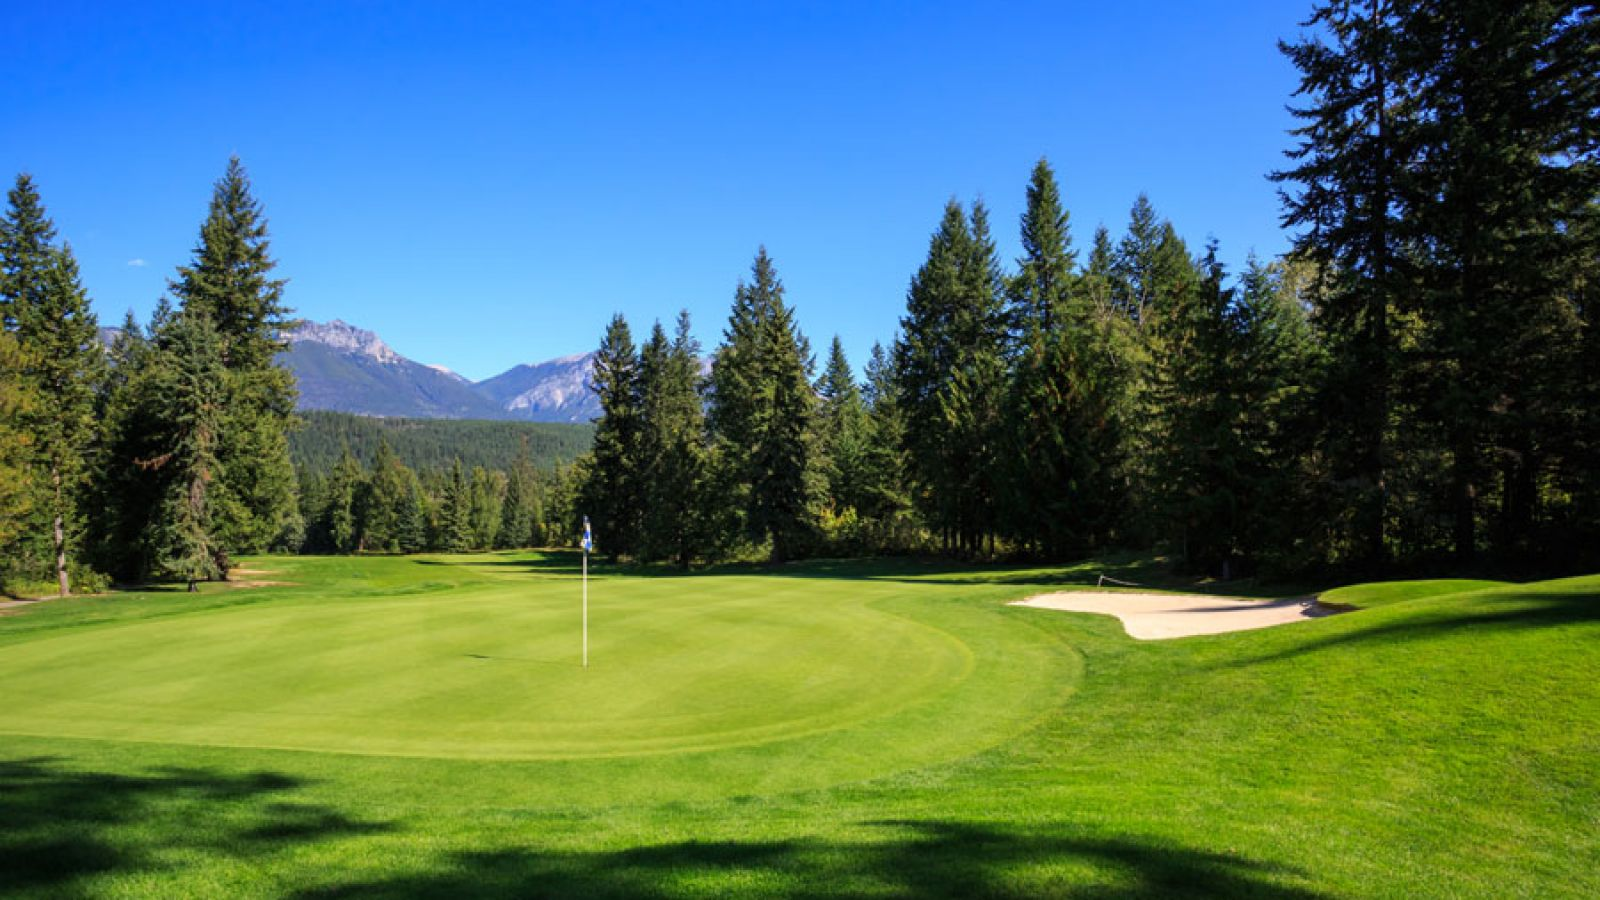 A beautiful course with sweet mountain views.